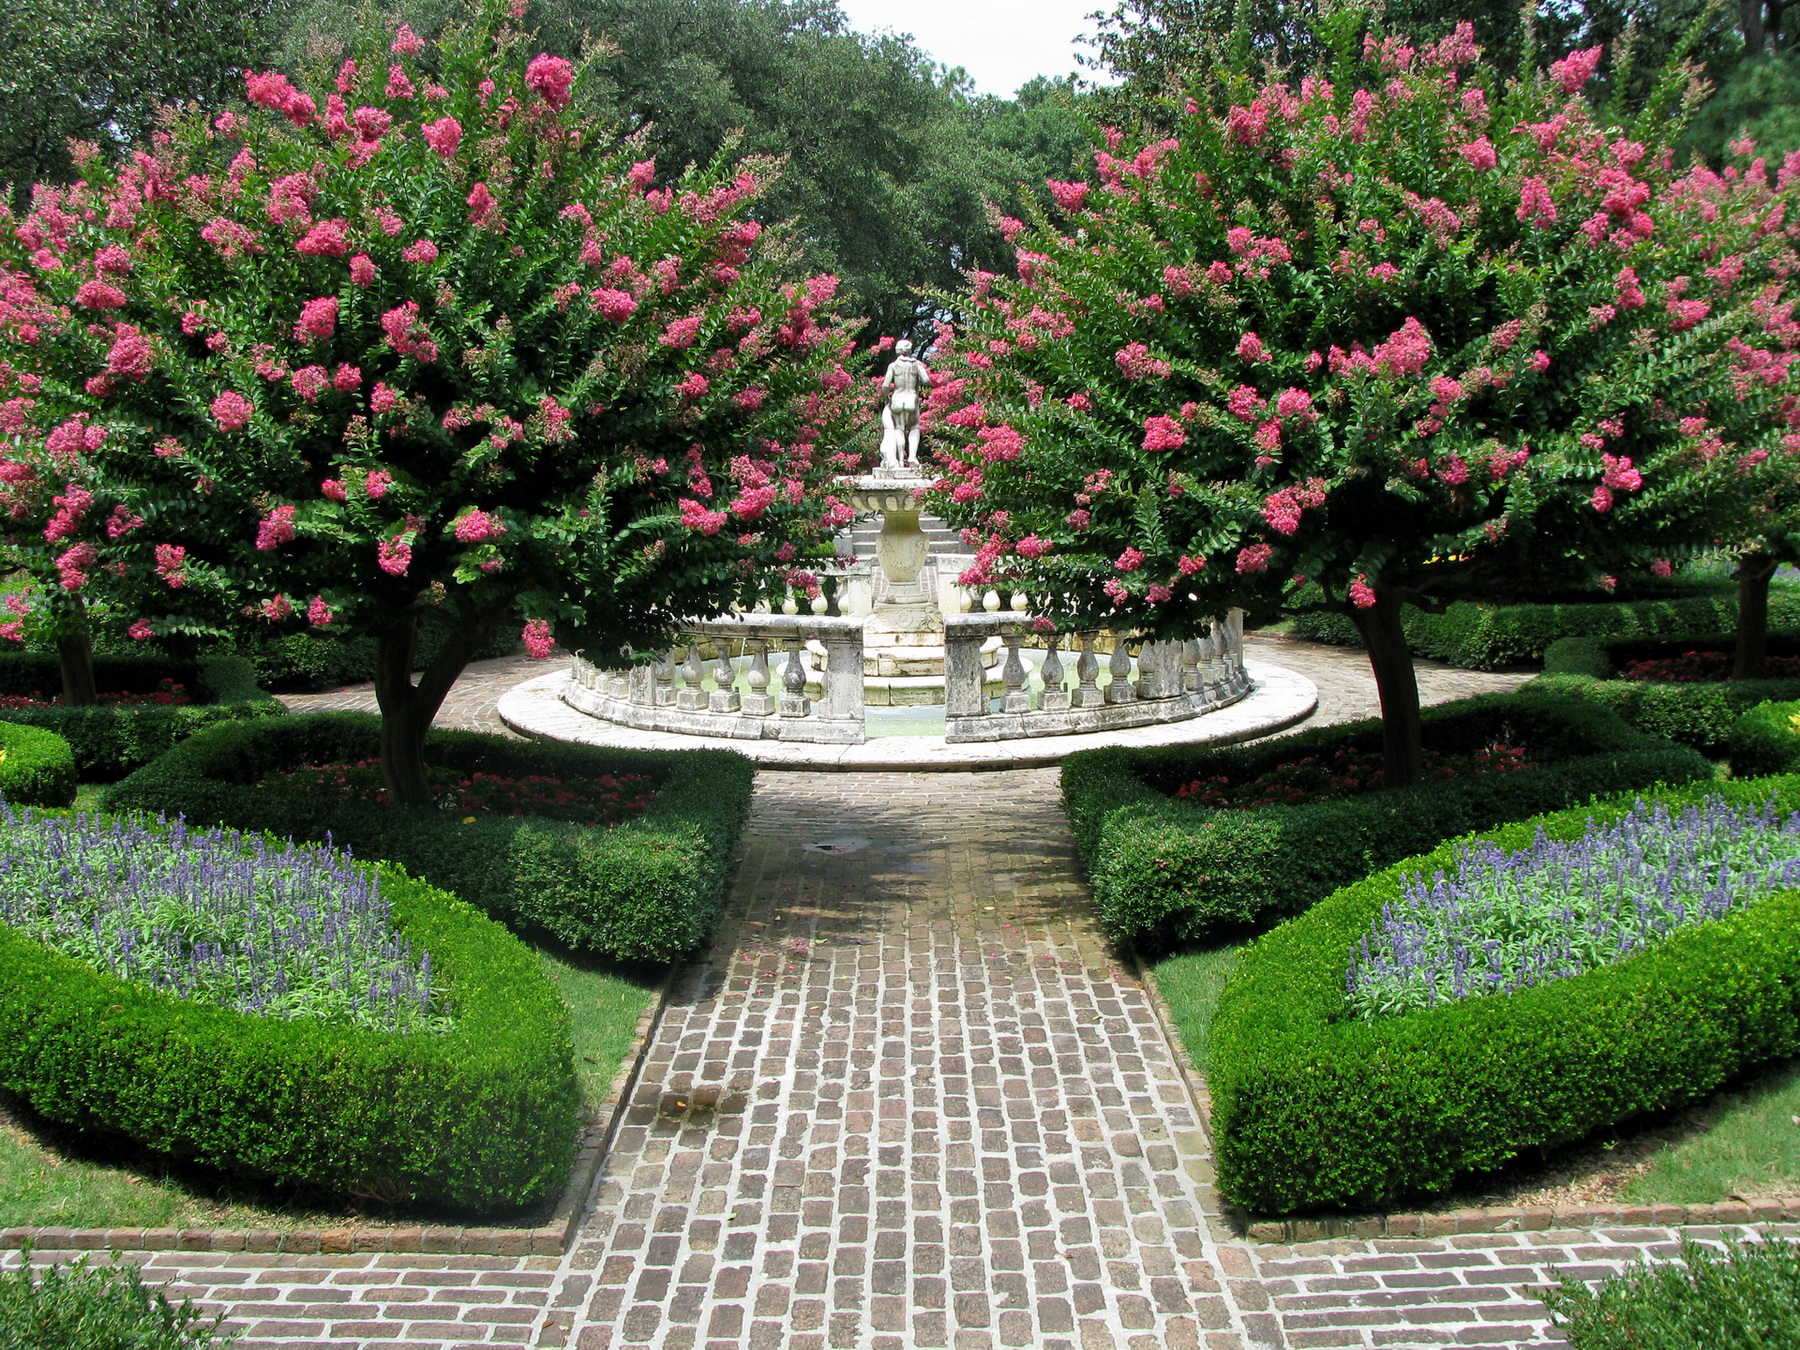 elizabethan gardening A shakespeare garden is a themed garden that cultivates plants mentioned in the works of william shakespeare elizabethan garden, folger shakespeare library.